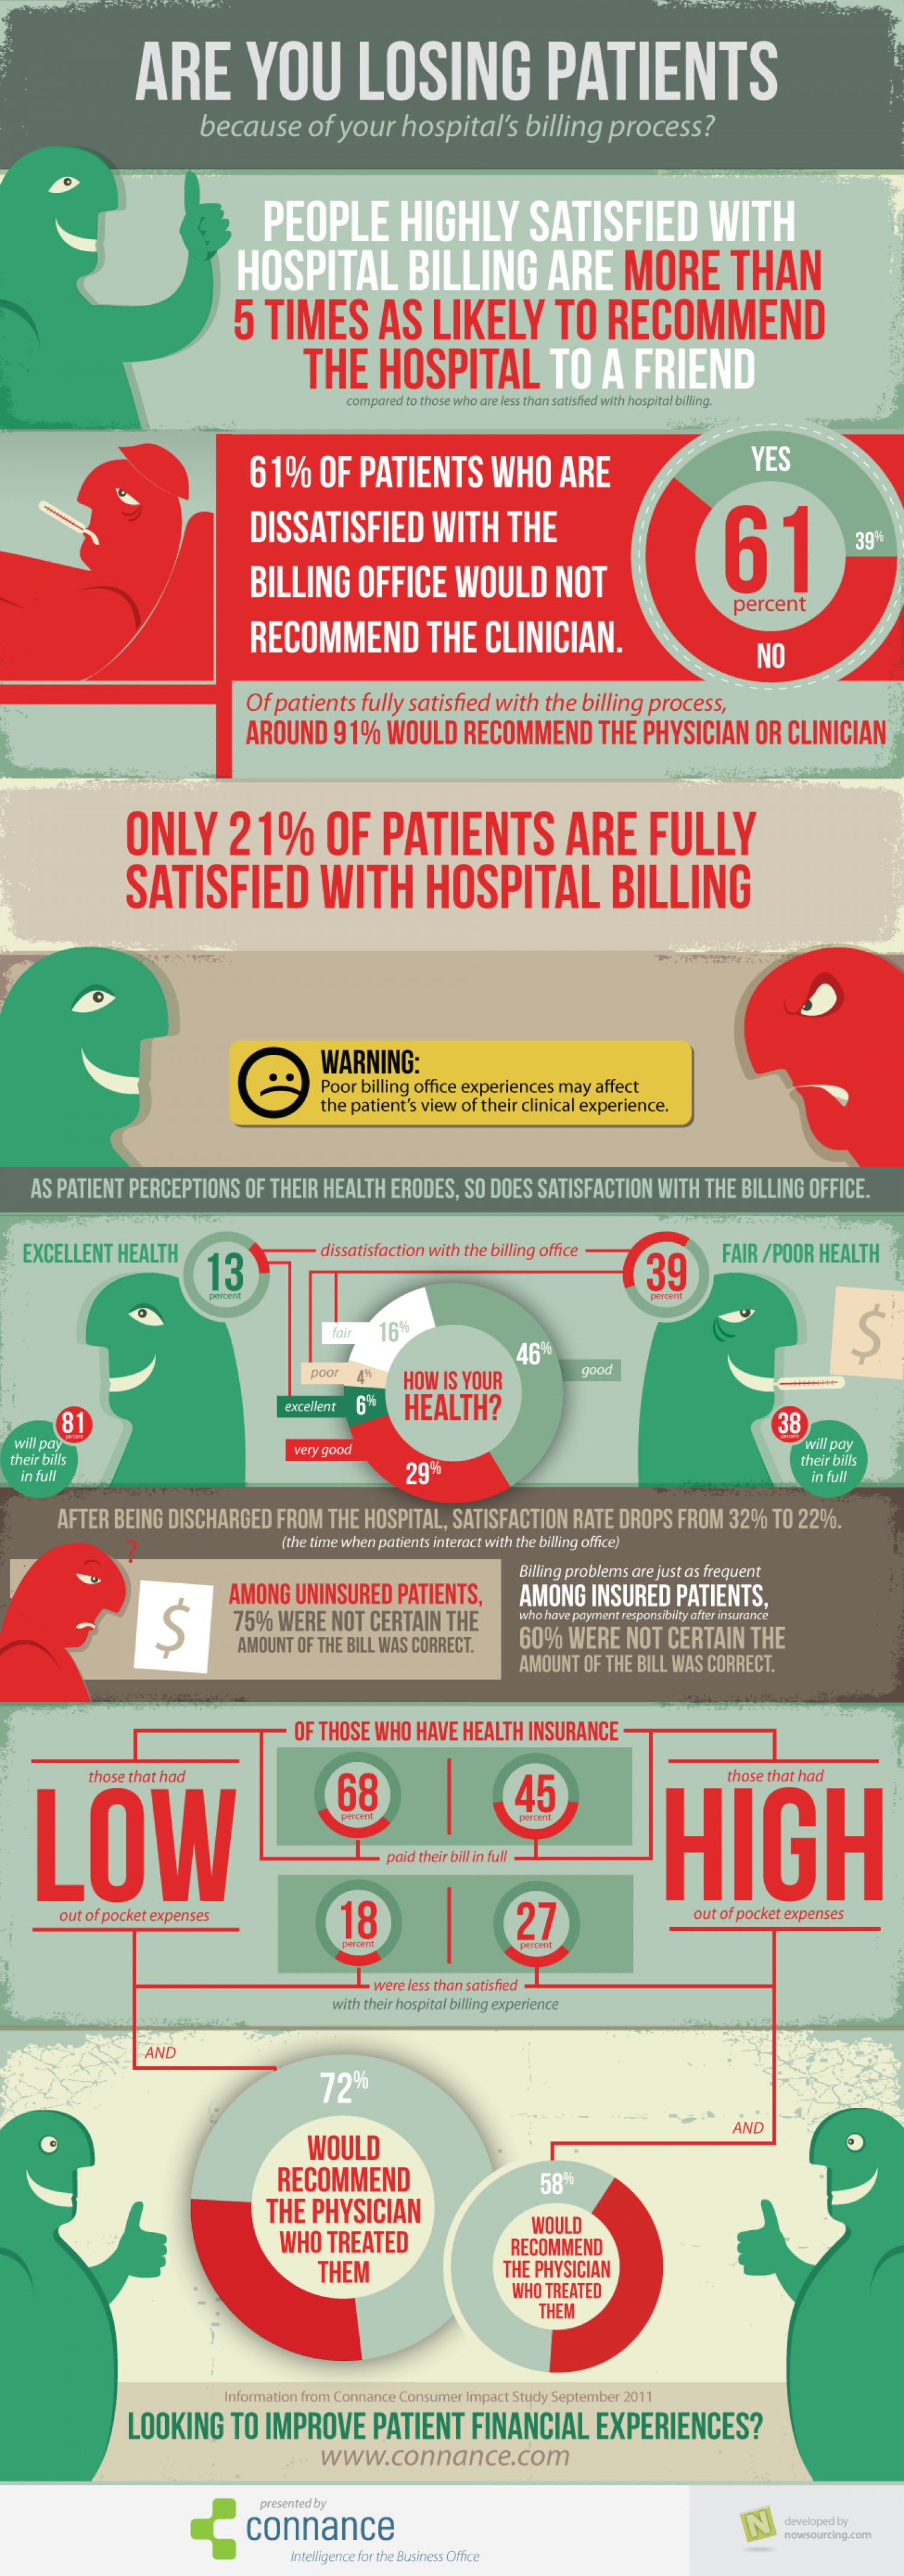 Are You Losing Patients? Infographic